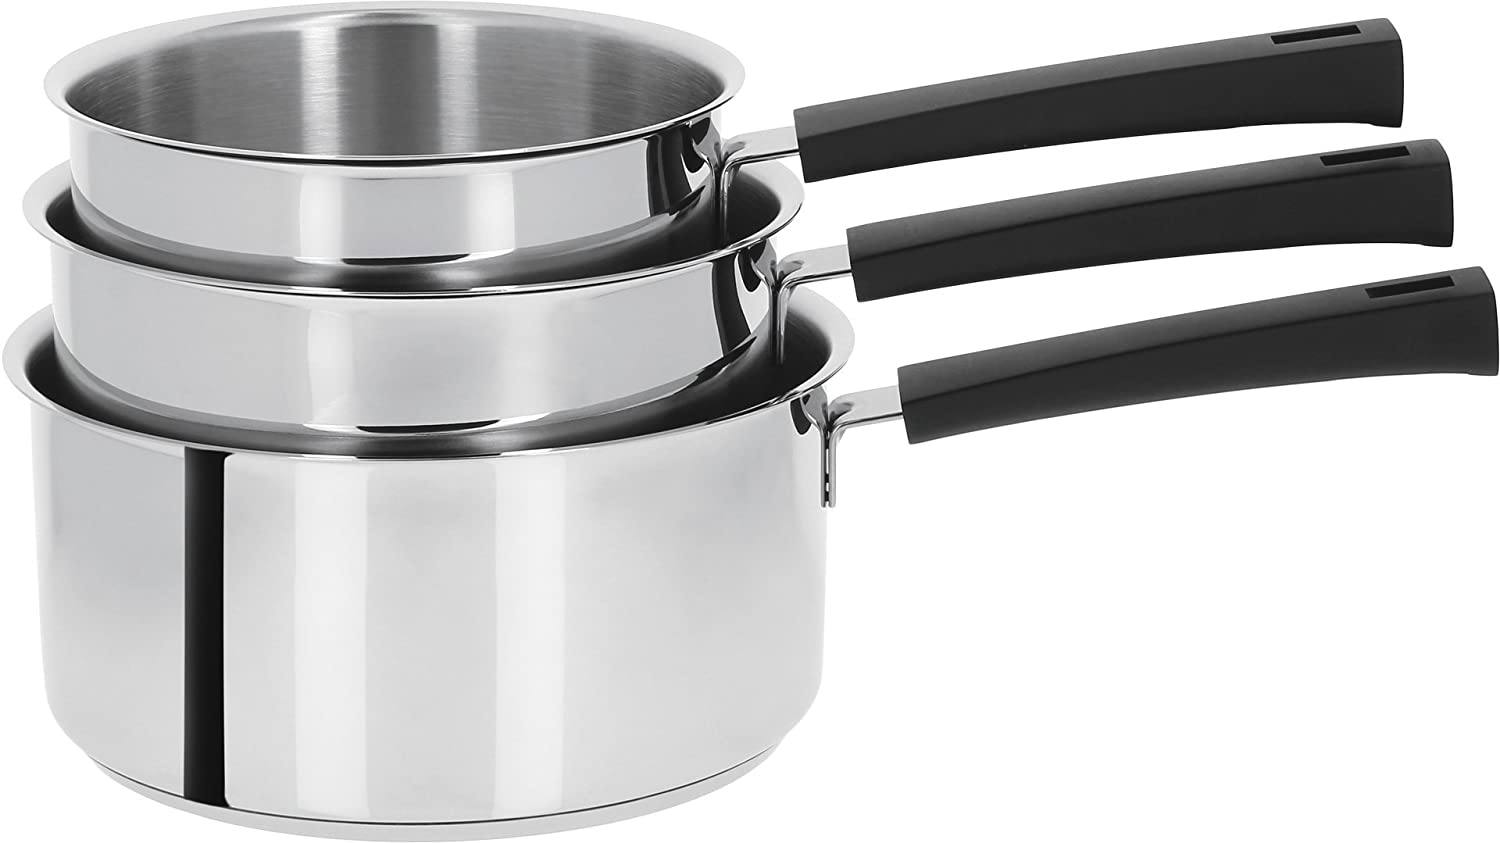 Cristel - C14MN- Casserole inox 14cm Collection Mutine Noir